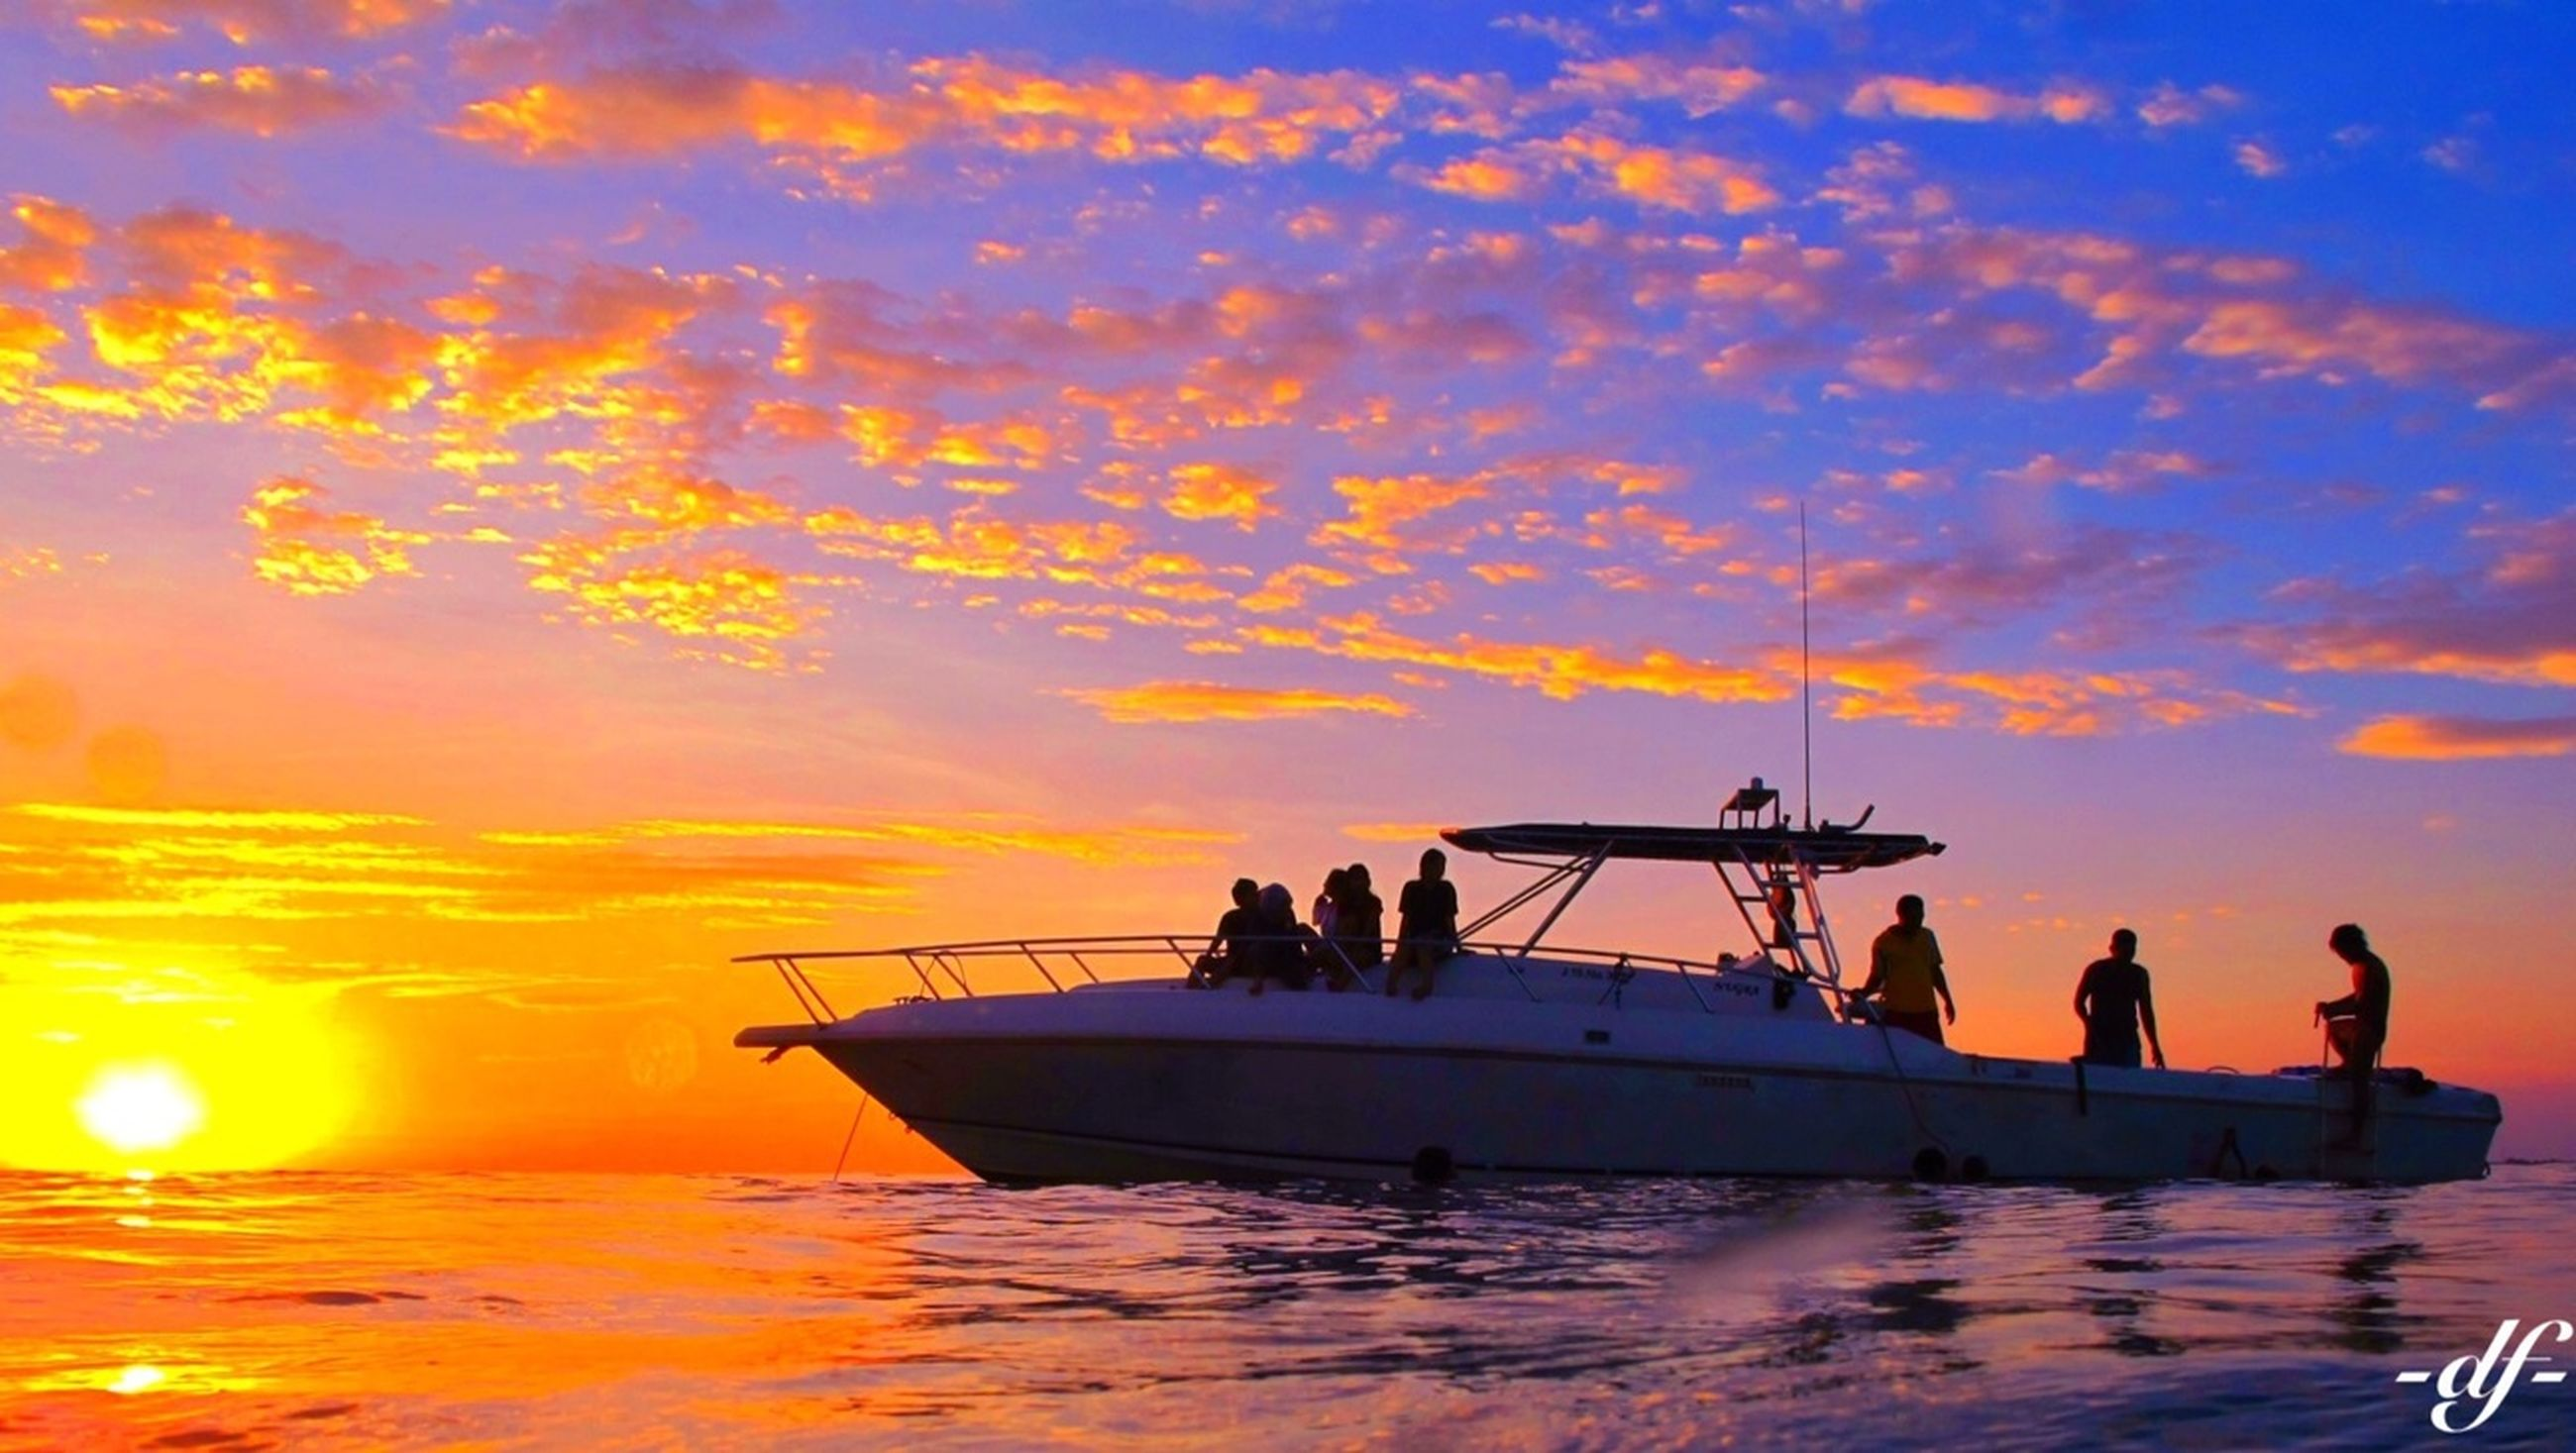 sunset, water, silhouette, orange color, sky, nautical vessel, transportation, waterfront, sea, boat, mode of transport, cloud - sky, reflection, beauty in nature, scenics, nature, tranquility, tranquil scene, men